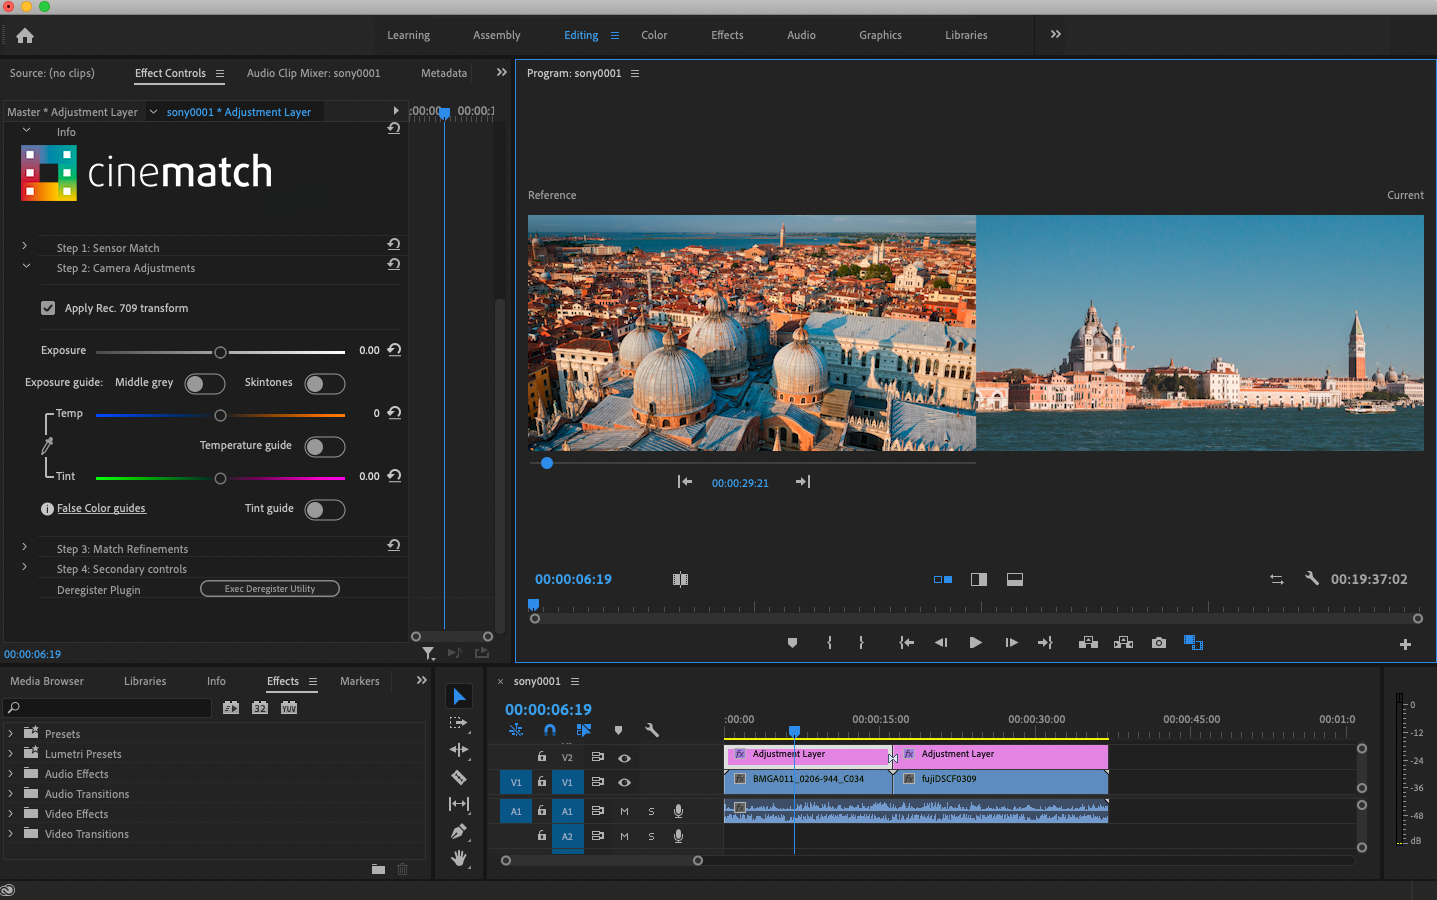 CineMatch in Adobe Premiere Pro primary adjustments